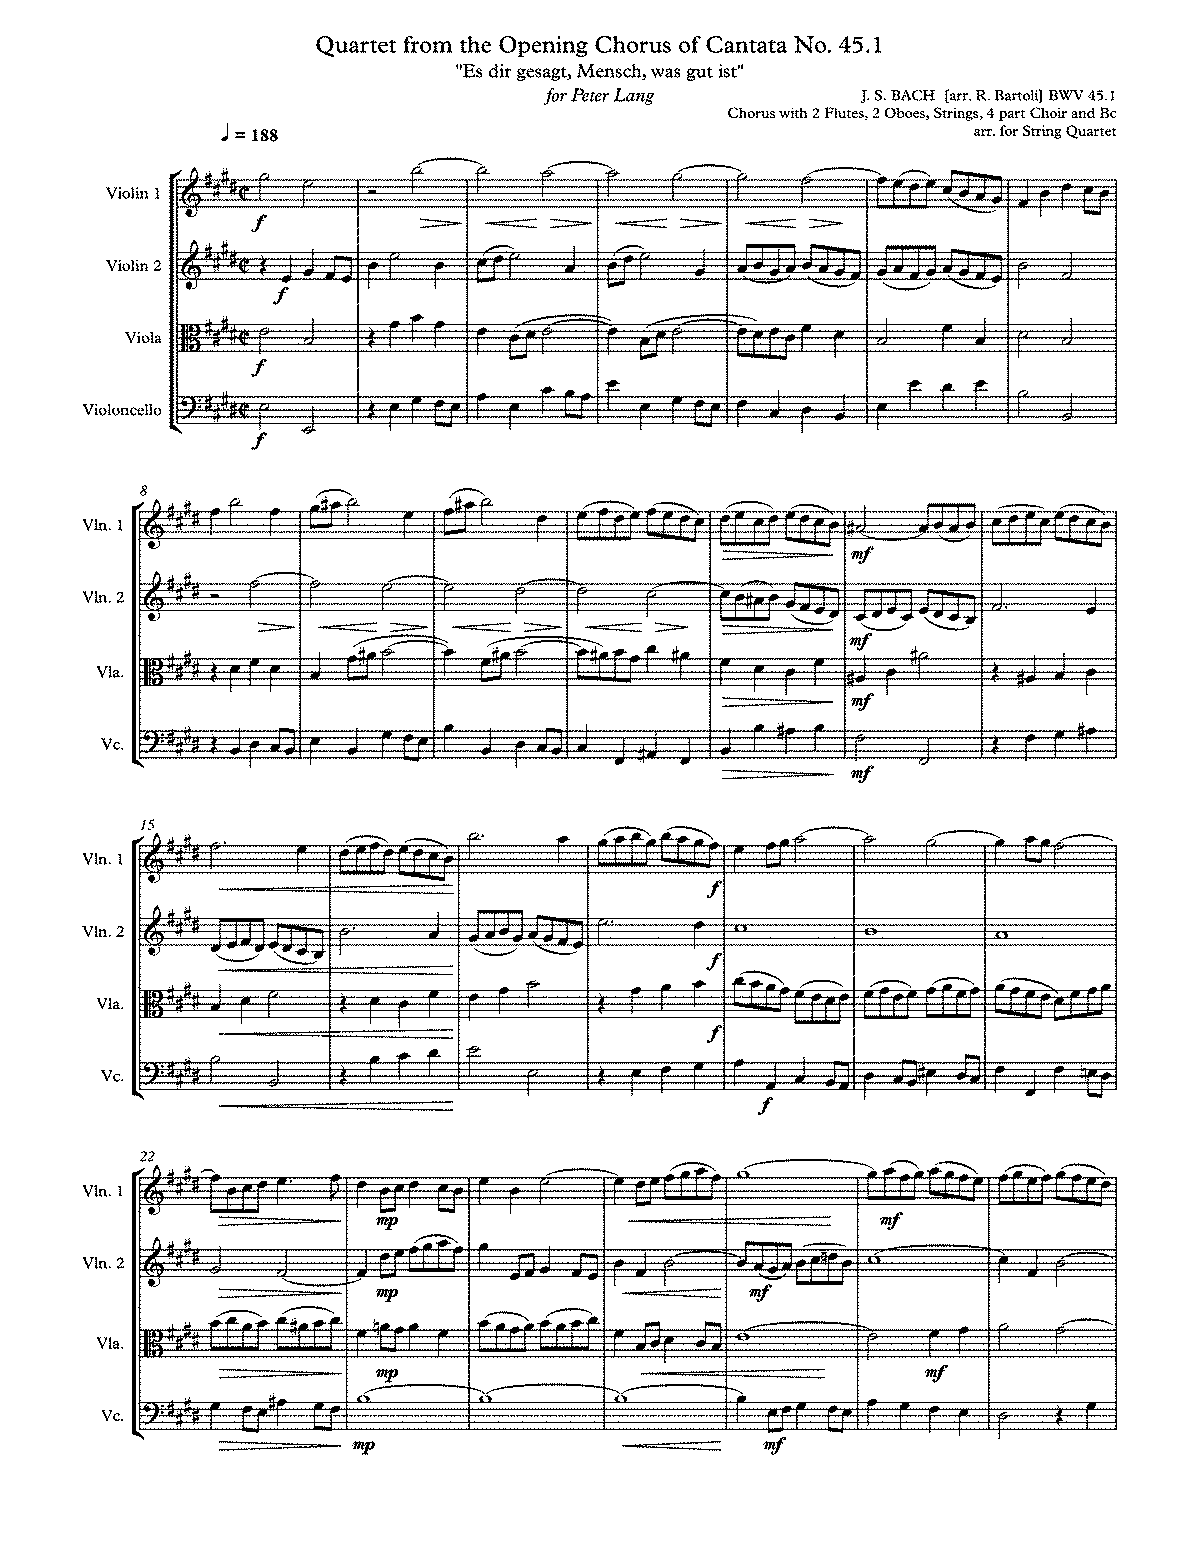 PMLP149287-bach 45.1 s4 in original E RUSS done - Full Score.pdf